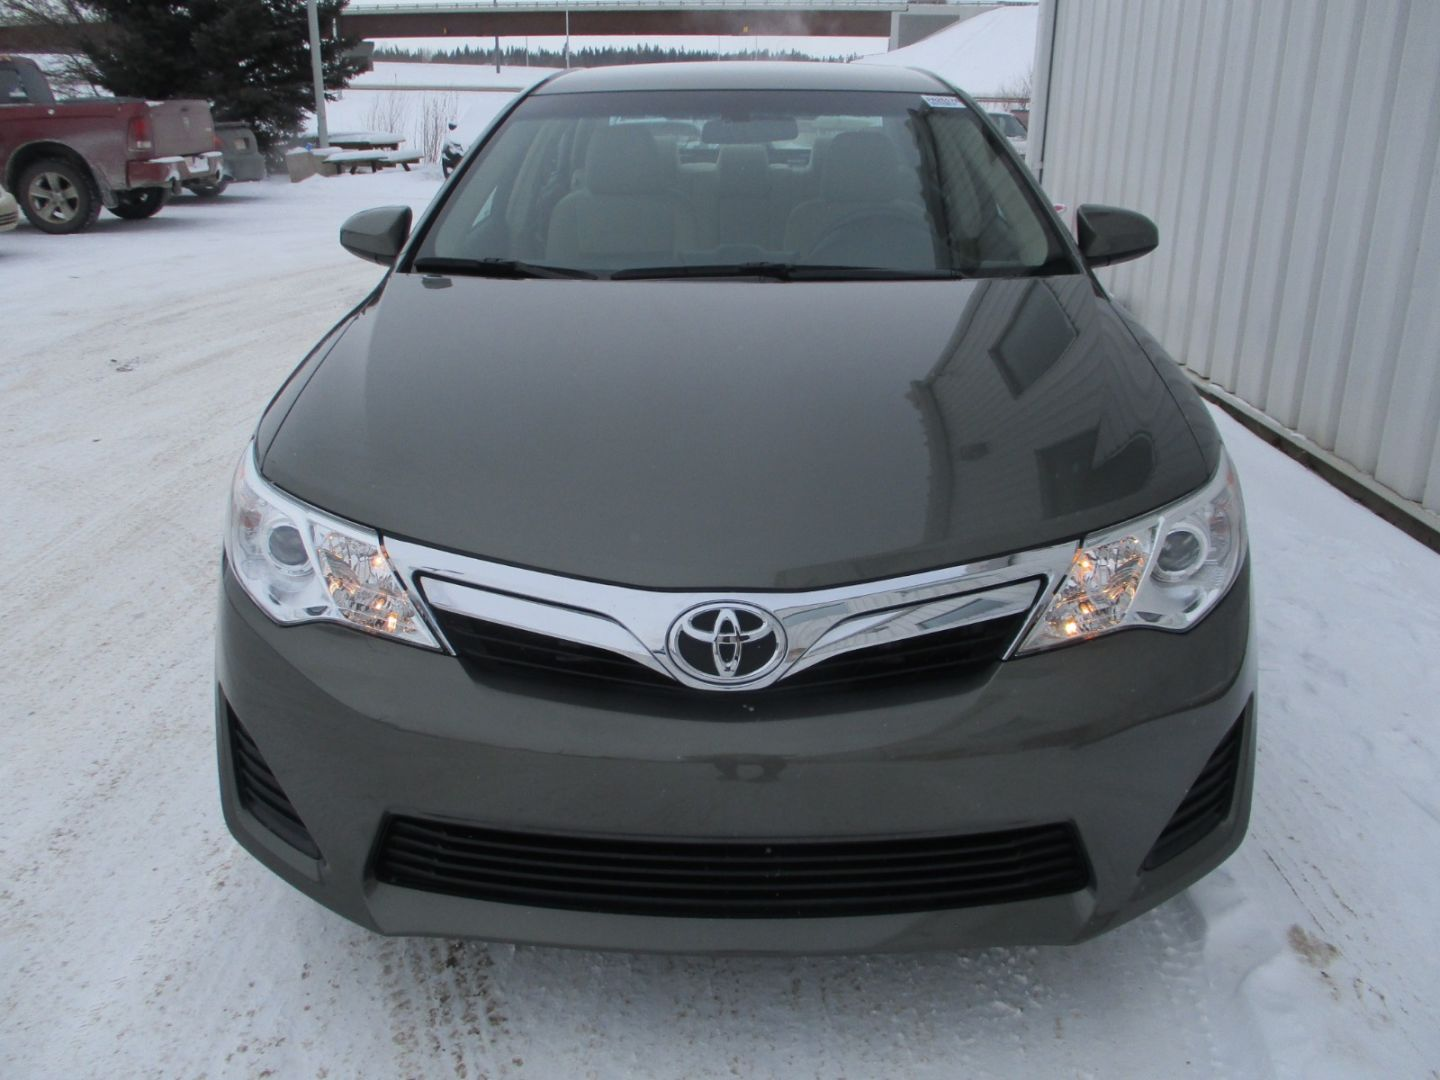 2014 Toyota Camry LE for sale in Red Deer, Alberta